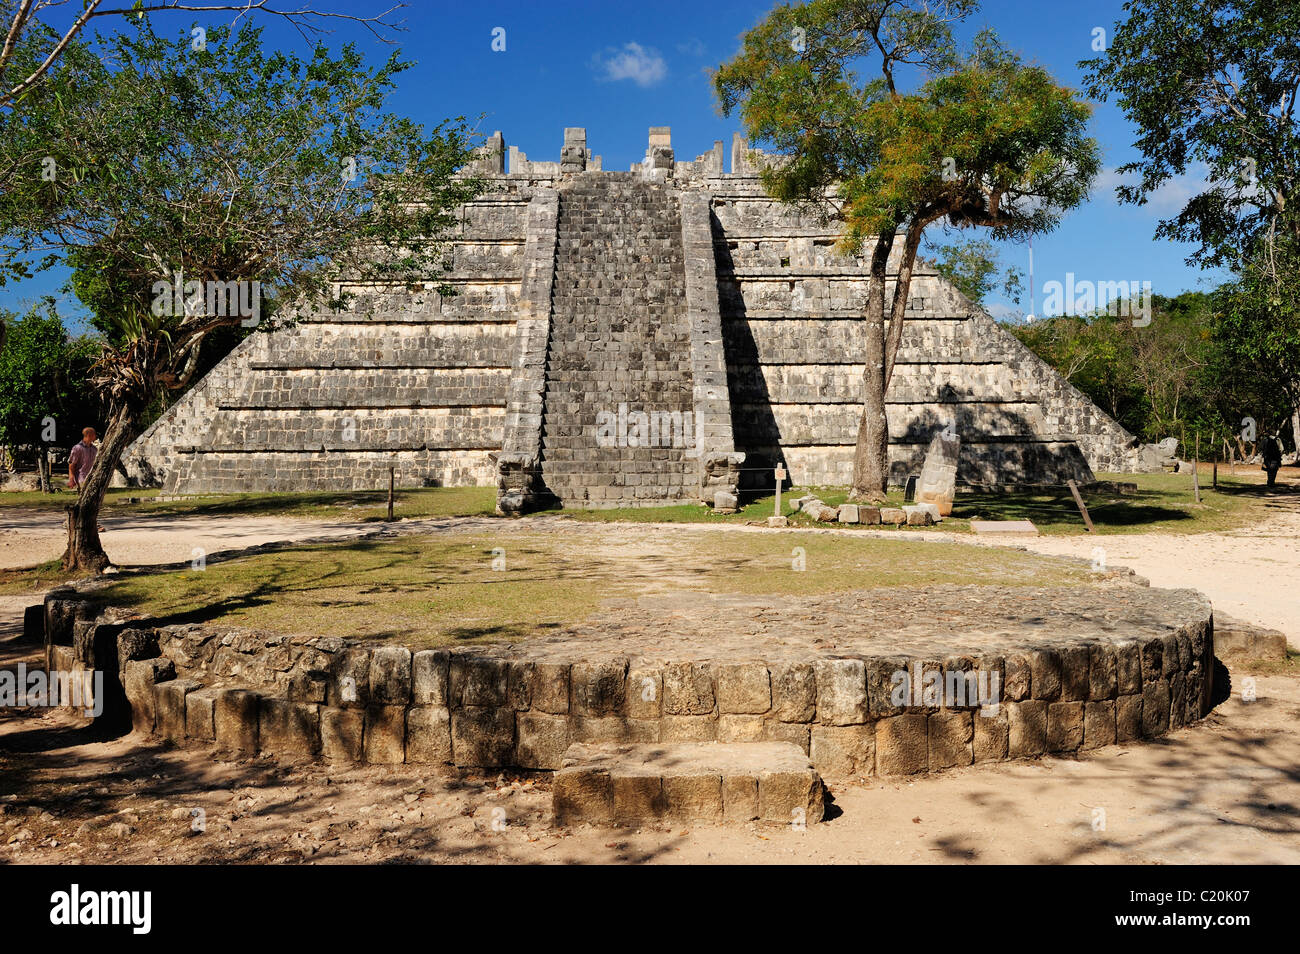 The Ossuary at Chichen Itza, Yucatan, Mexico - Stock Image